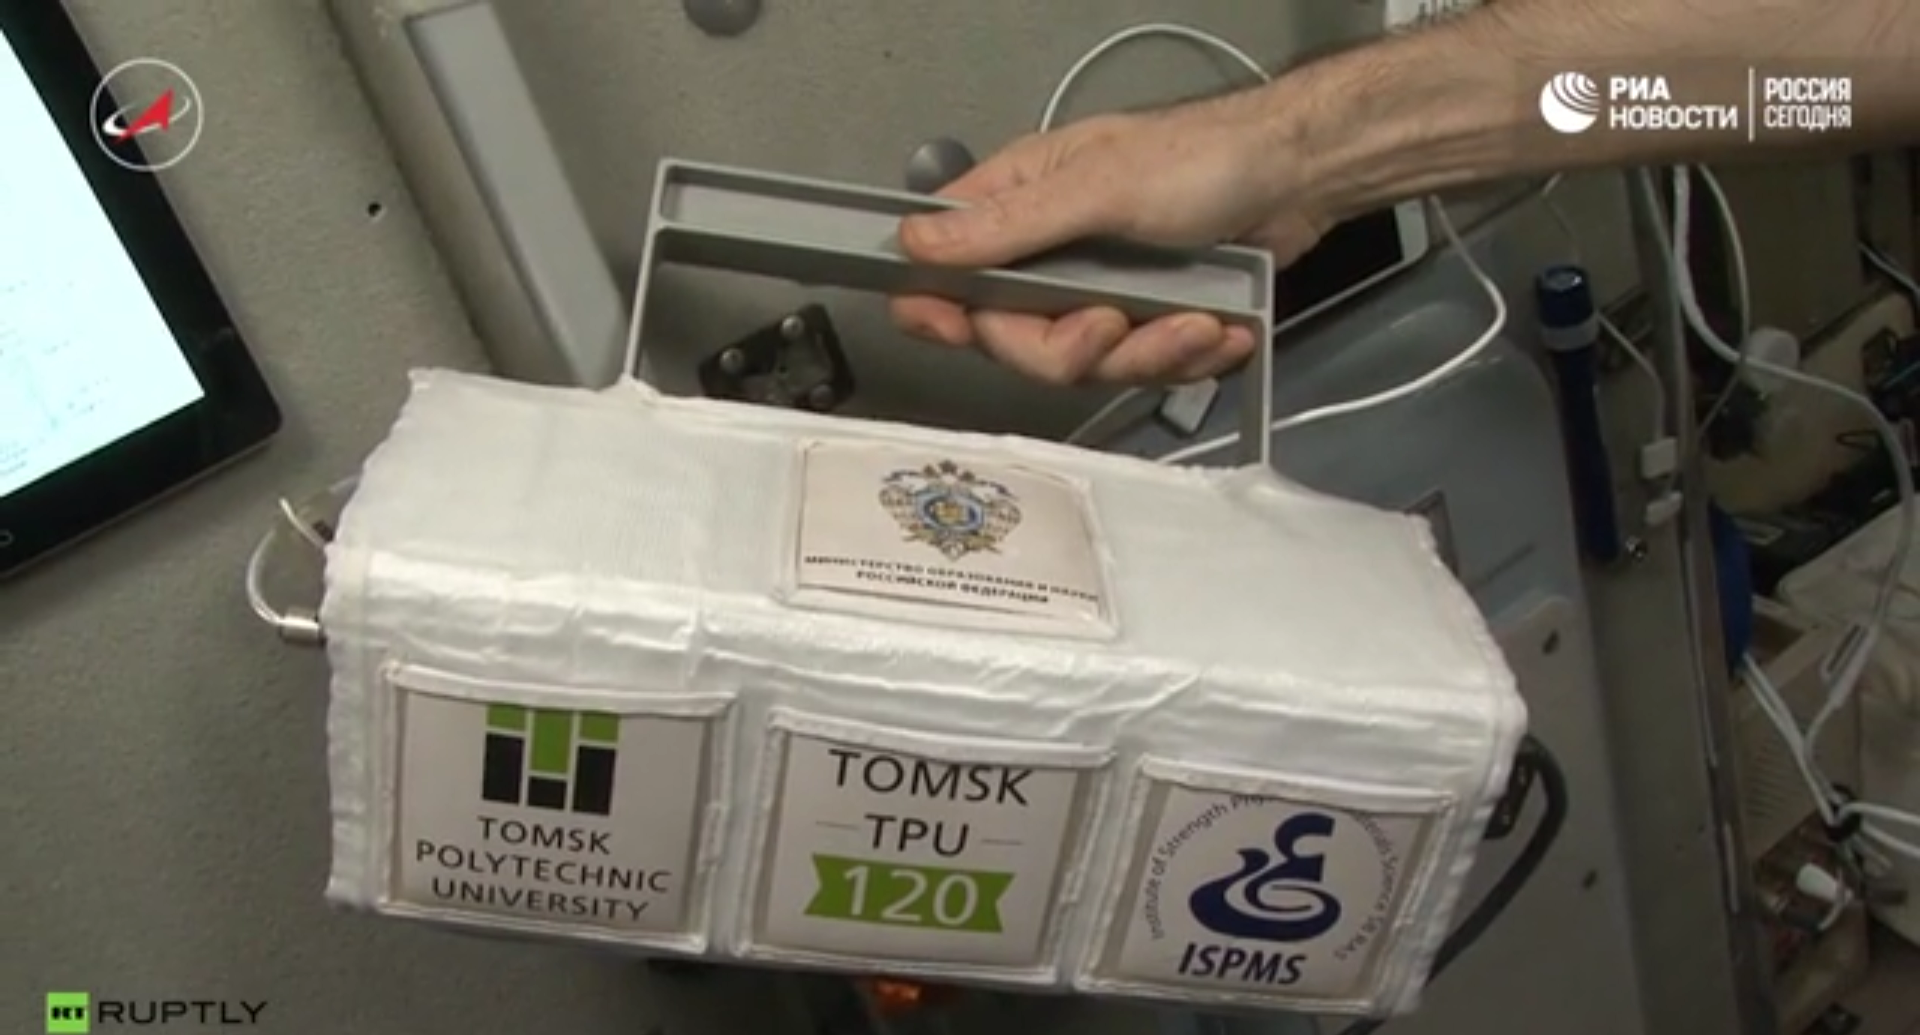 The Tomsk-TPU-120 microsatellites onboard the ISS. Image via Tomsk University.